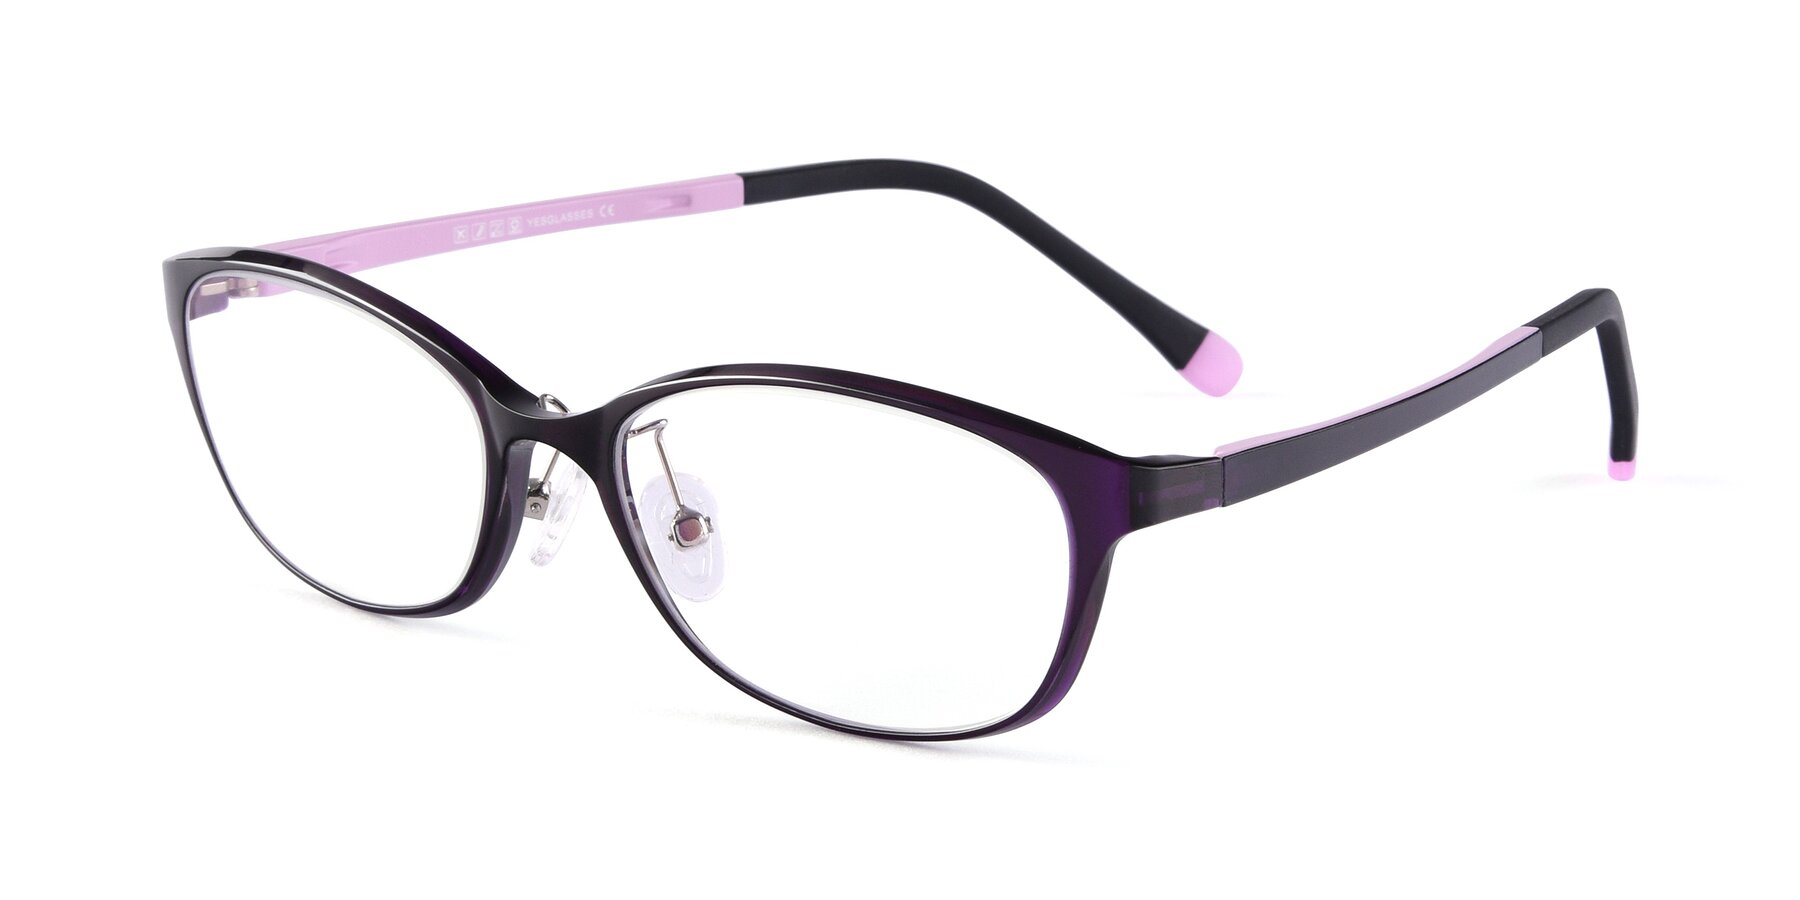 Angle of S7040 in Brown-Pink with Clear Blue Light Blocking Lenses